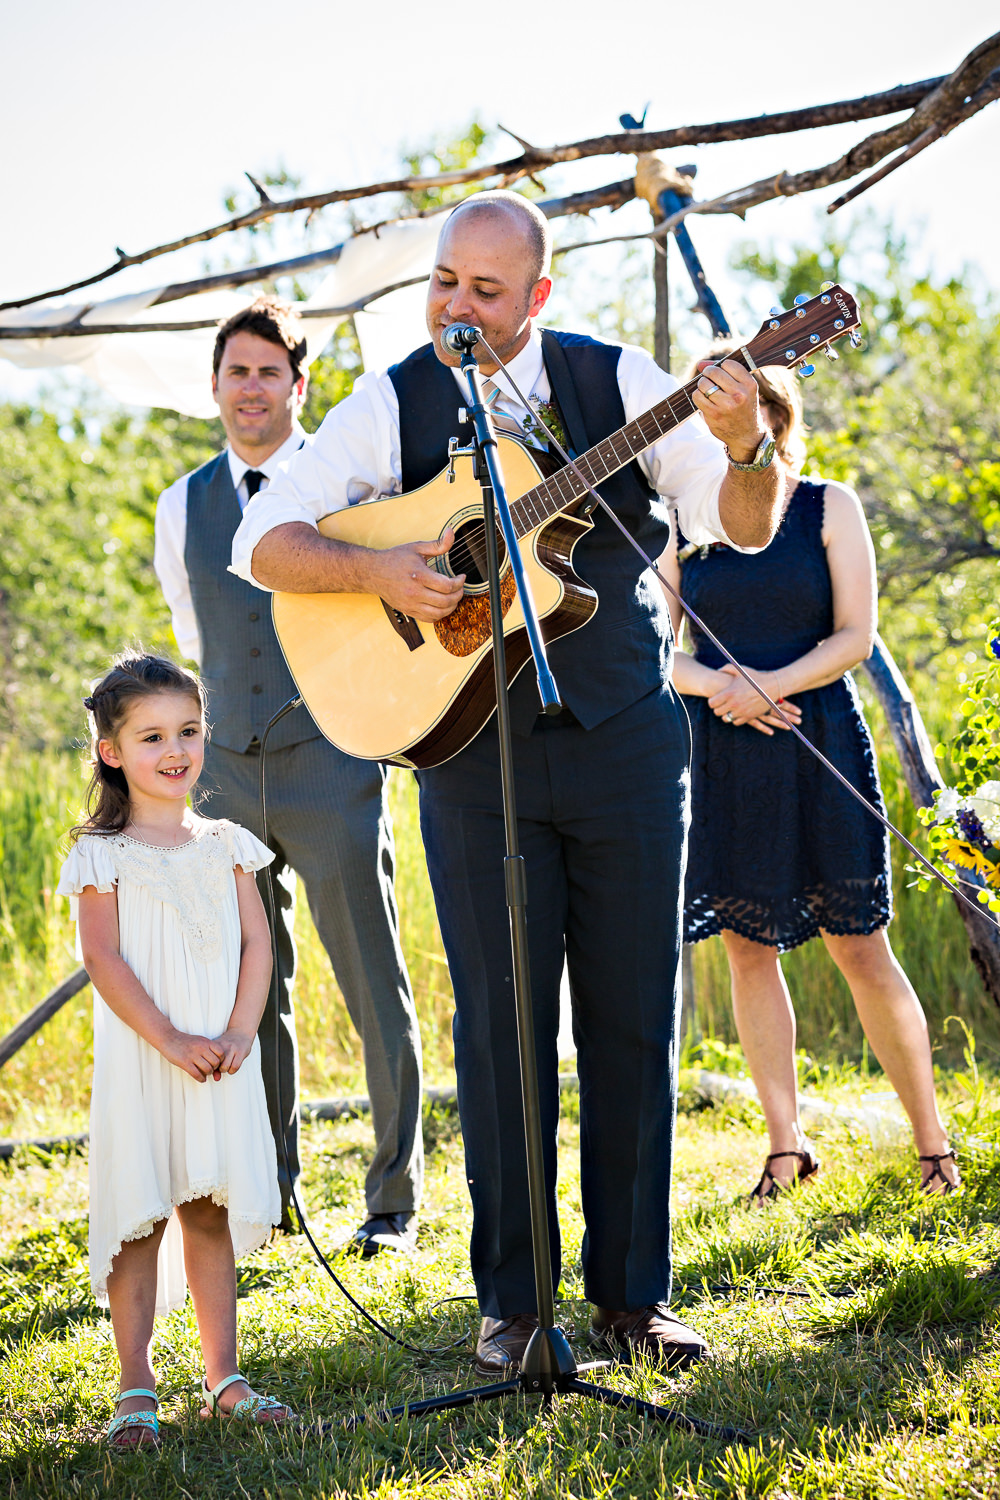 mcleod-montana-wedding-flowergirl-sings-dad-plays-guitar.jpg